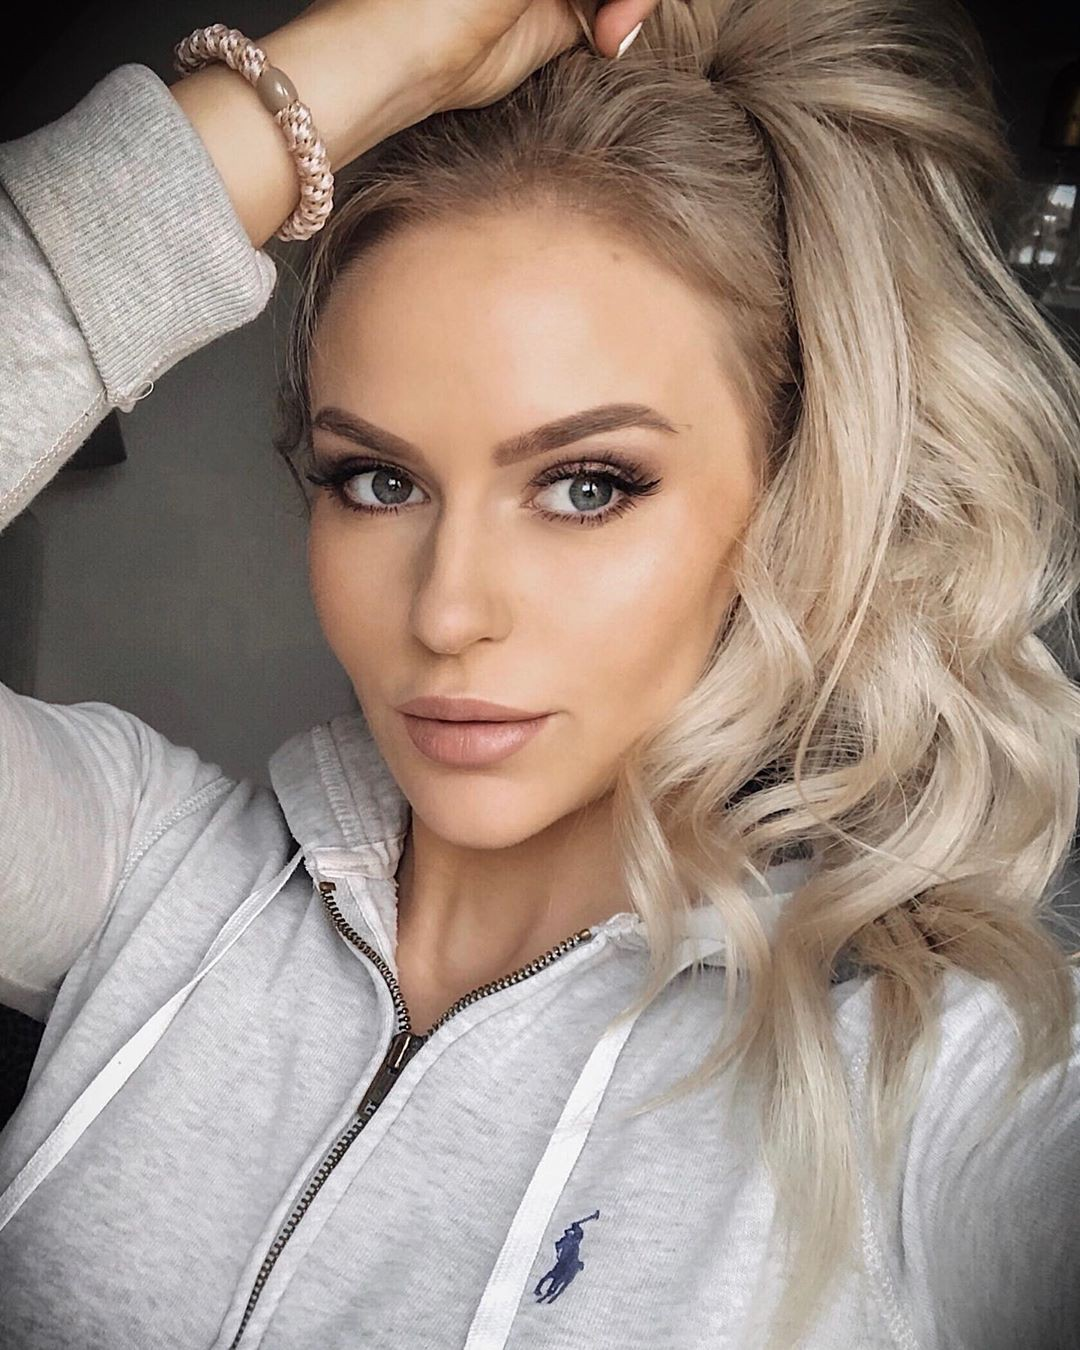 Anna Nystrom Instagram Pictures, Anna Nystrom, Hot Like Love